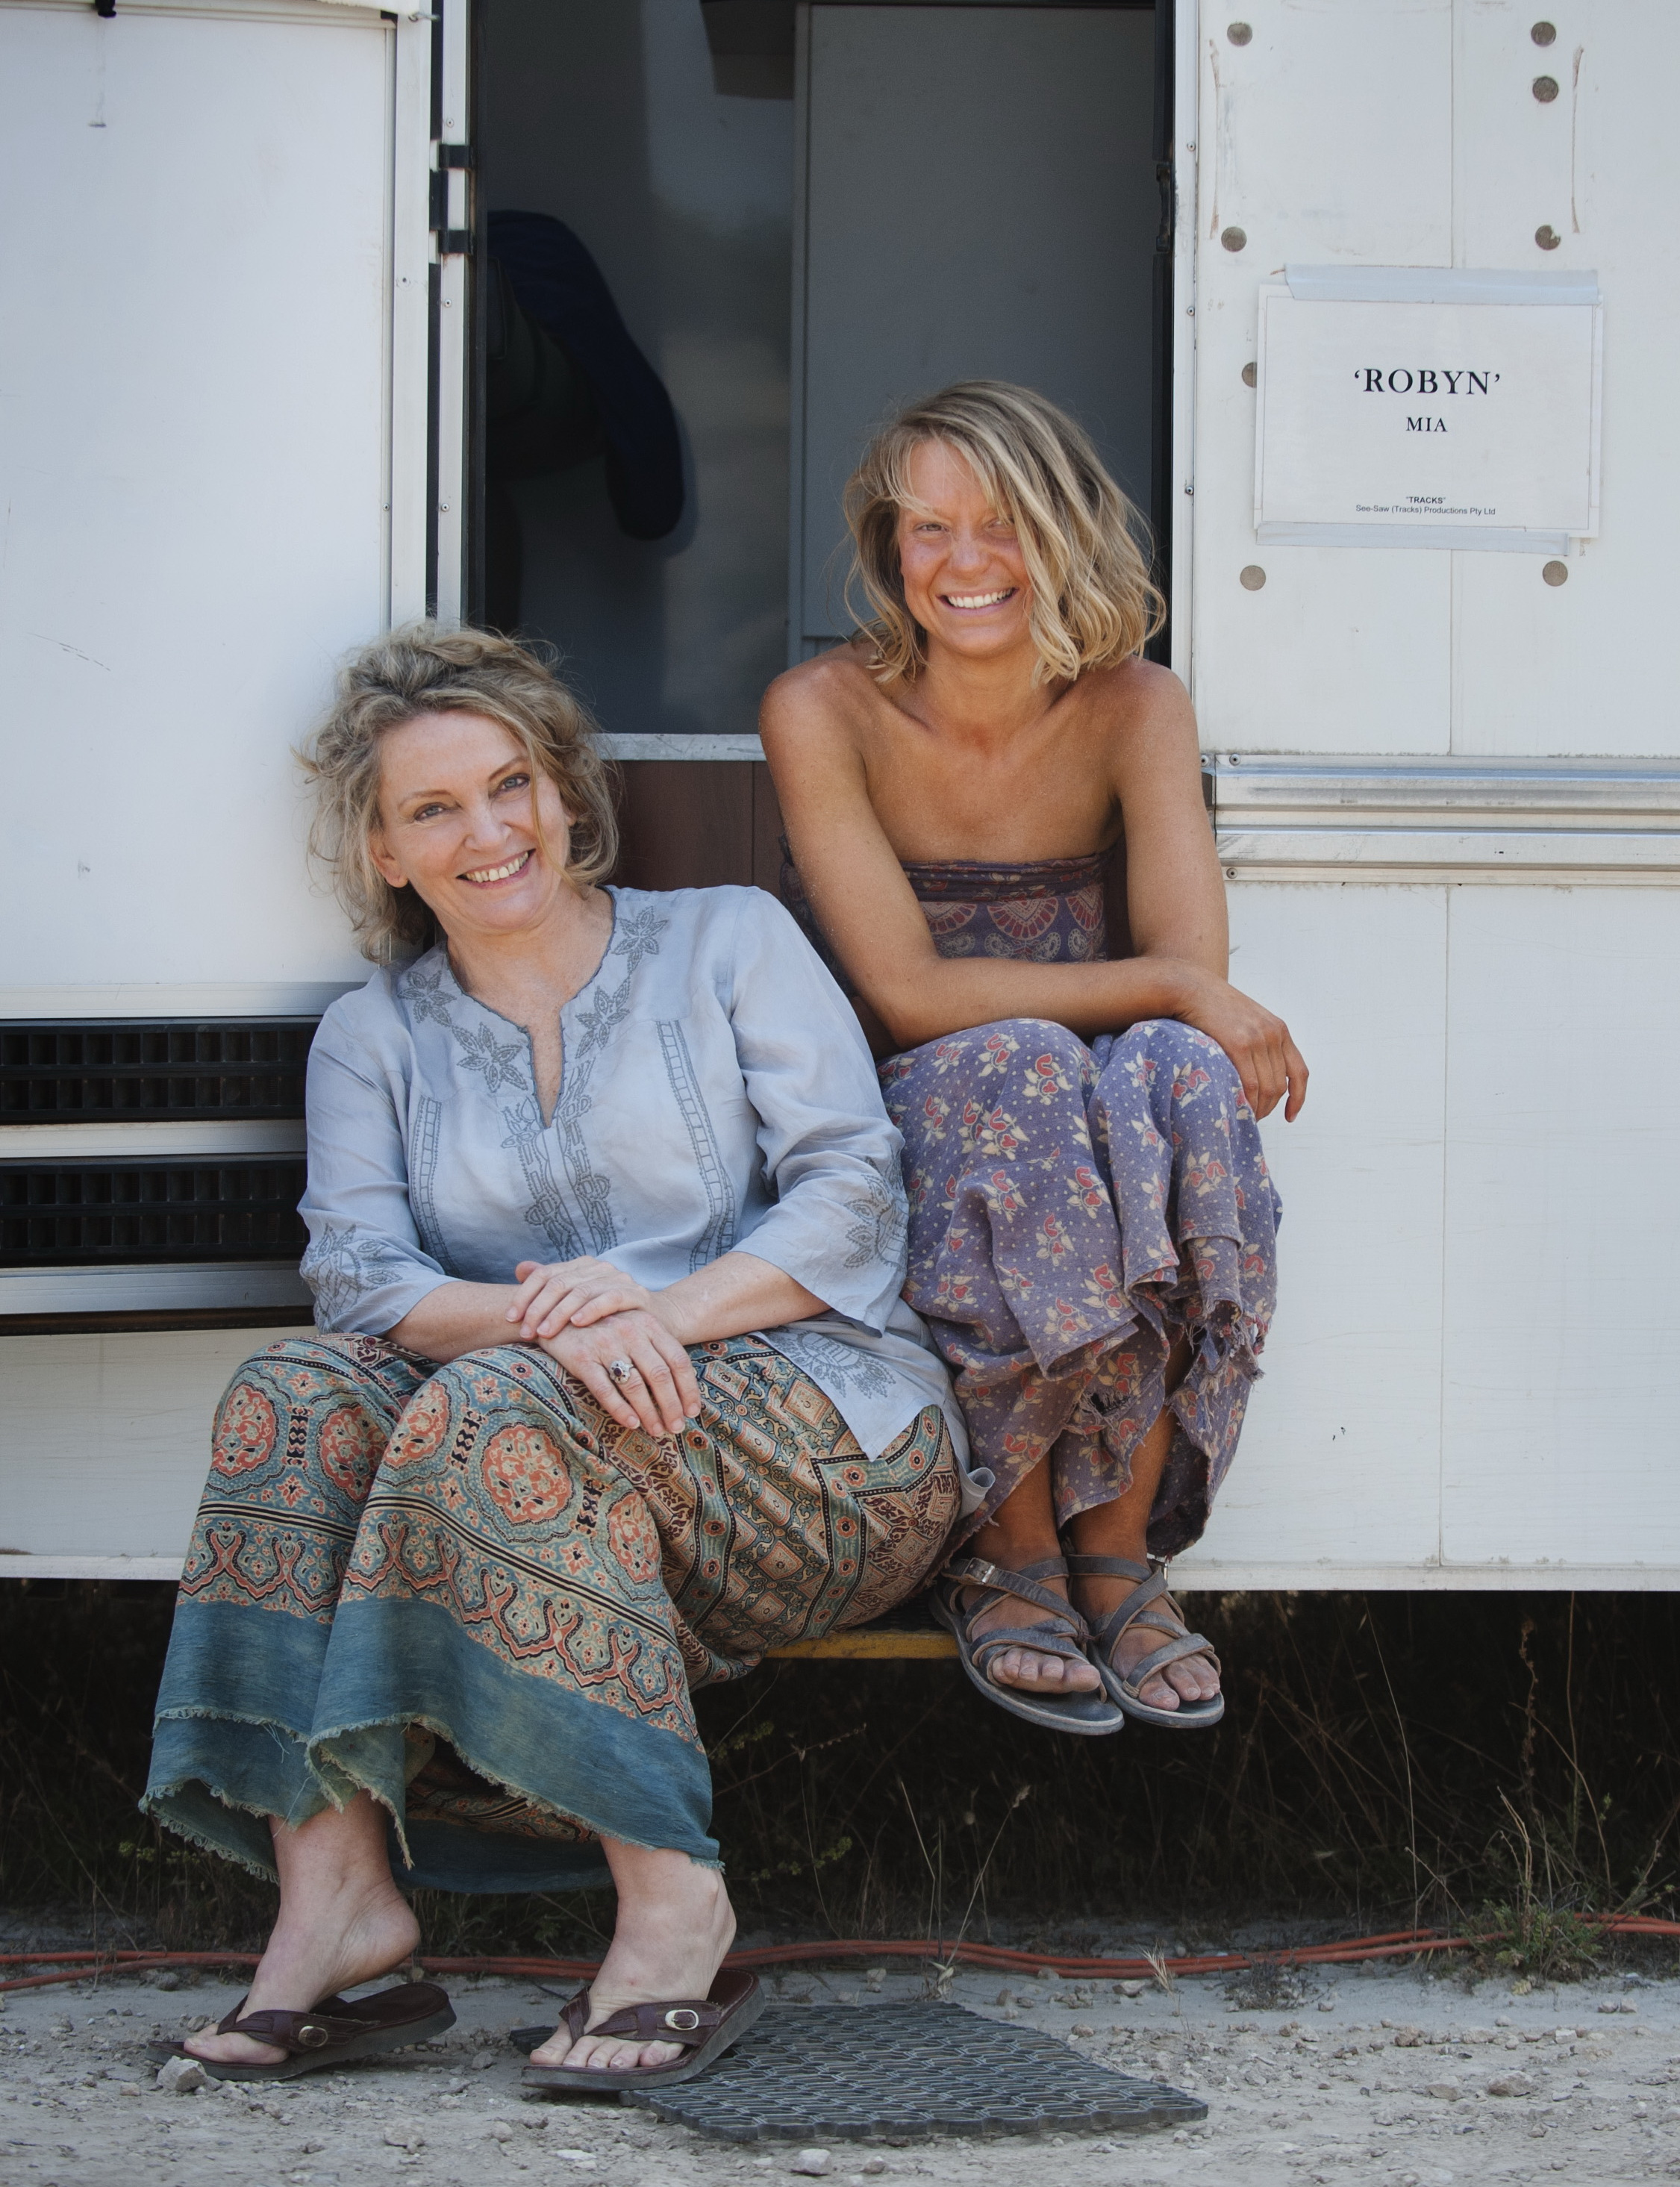 Robyn Davidson and Mia Wasikowska on the set of Tracks at Ayers Rock. © Matt Nettheim/See-Saw Films